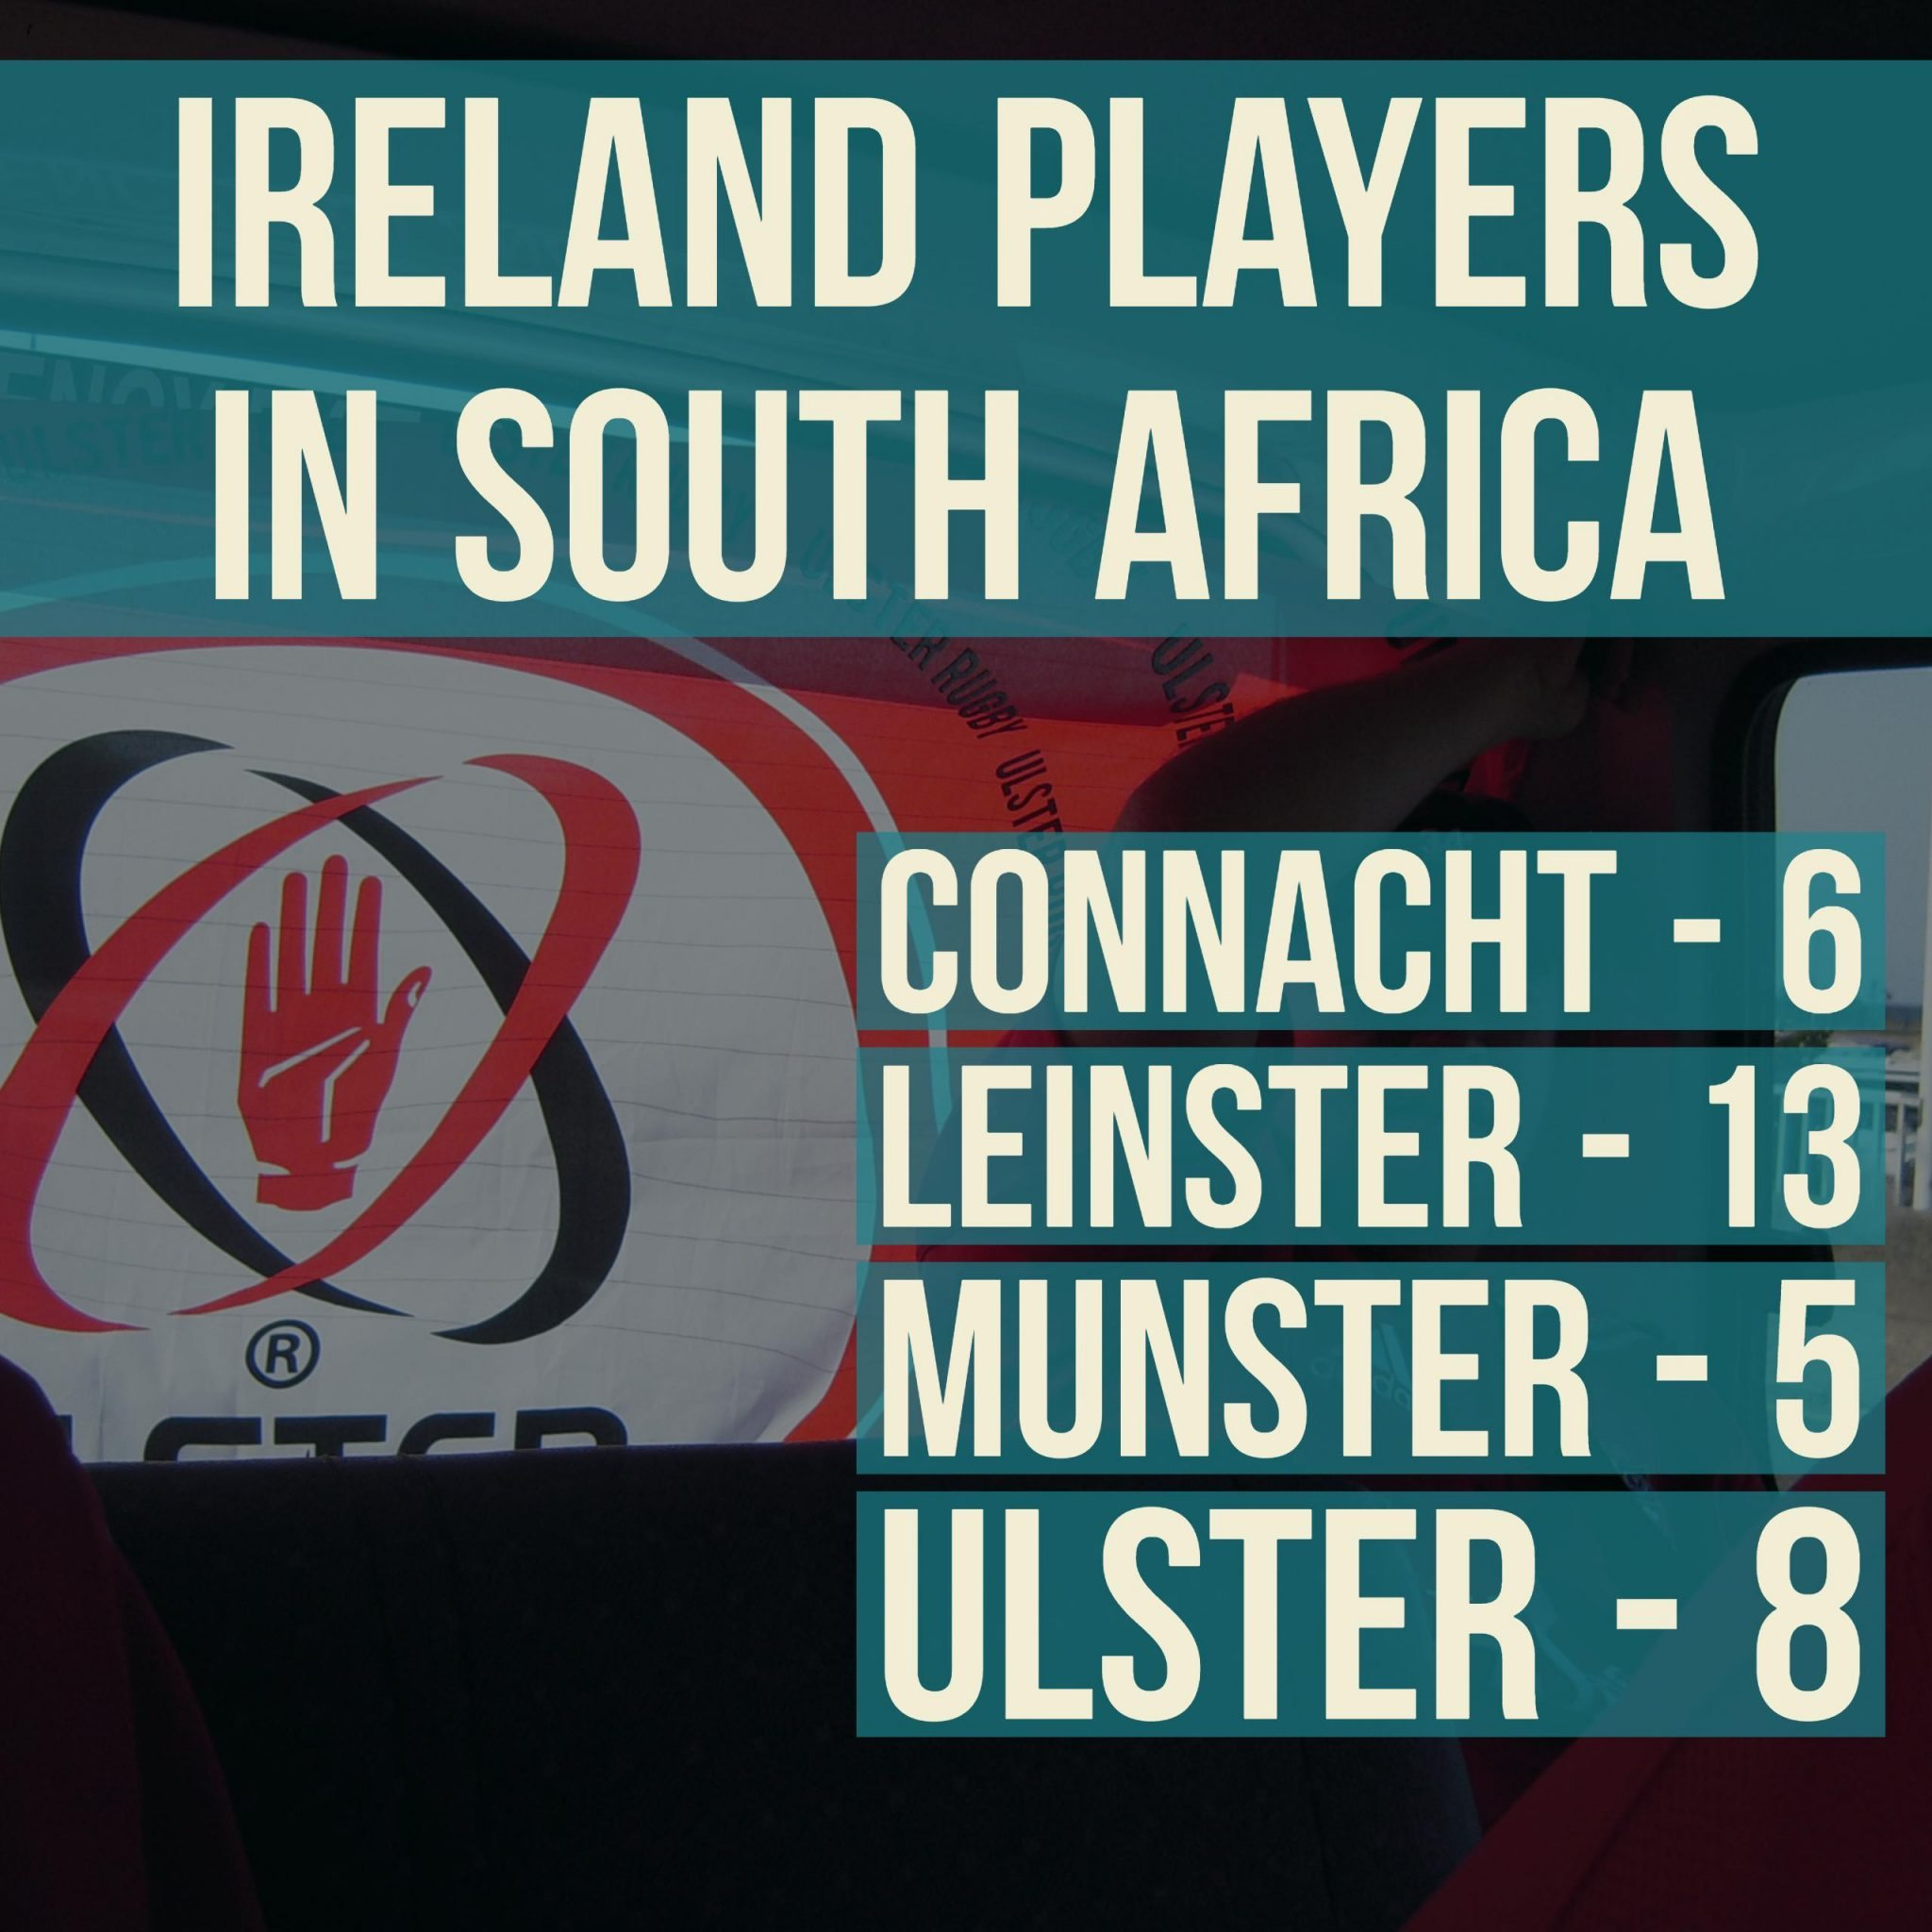 Ireland in South Africa